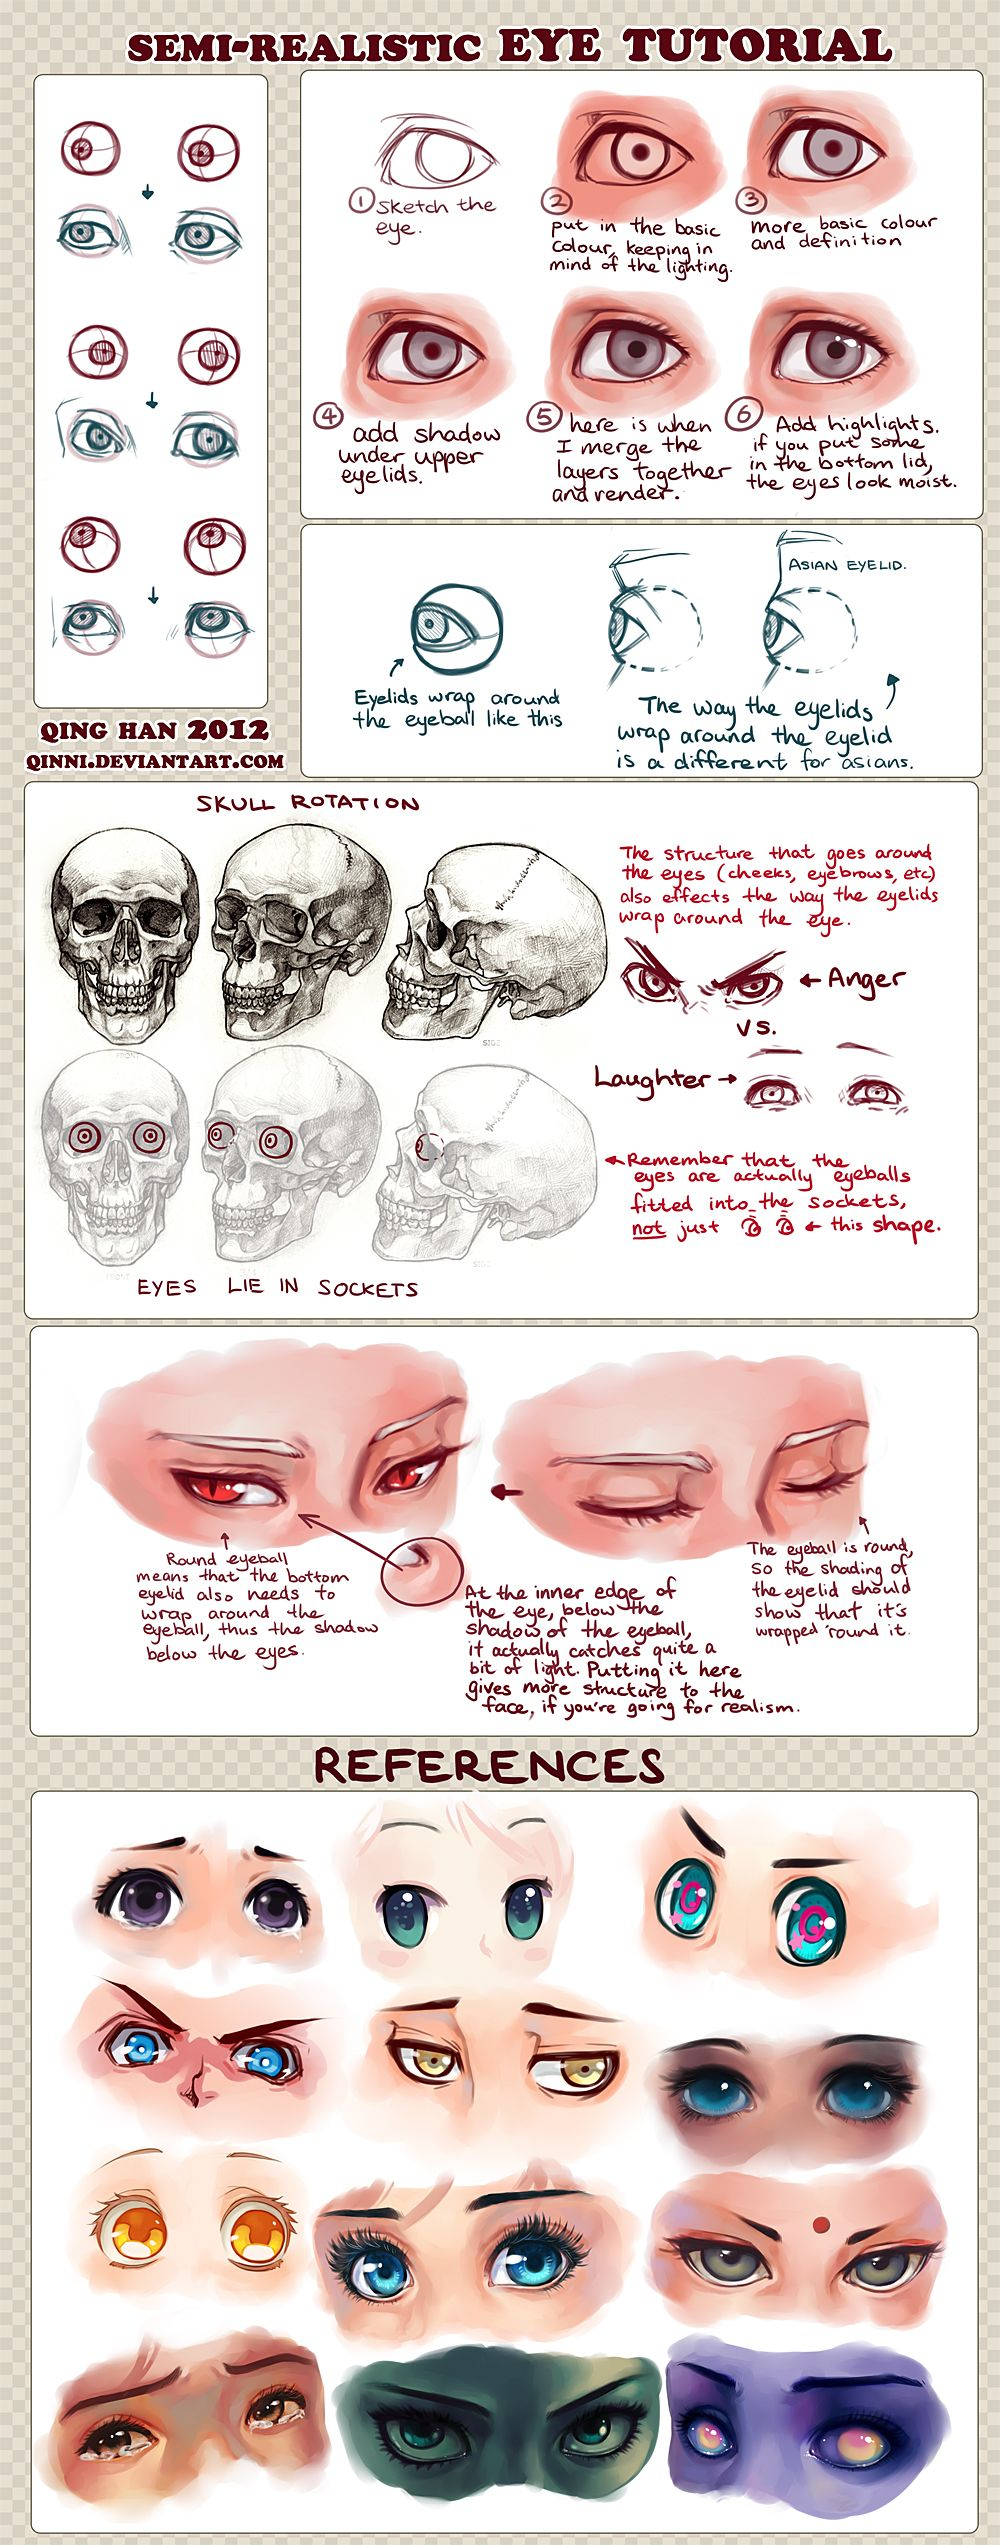 Semi realistic anime eye tutorial and references by qinni on semi realistic anime eye tutorial and references by qinni on deviantart drawing eyeseye drawingsrealistic ccuart Gallery